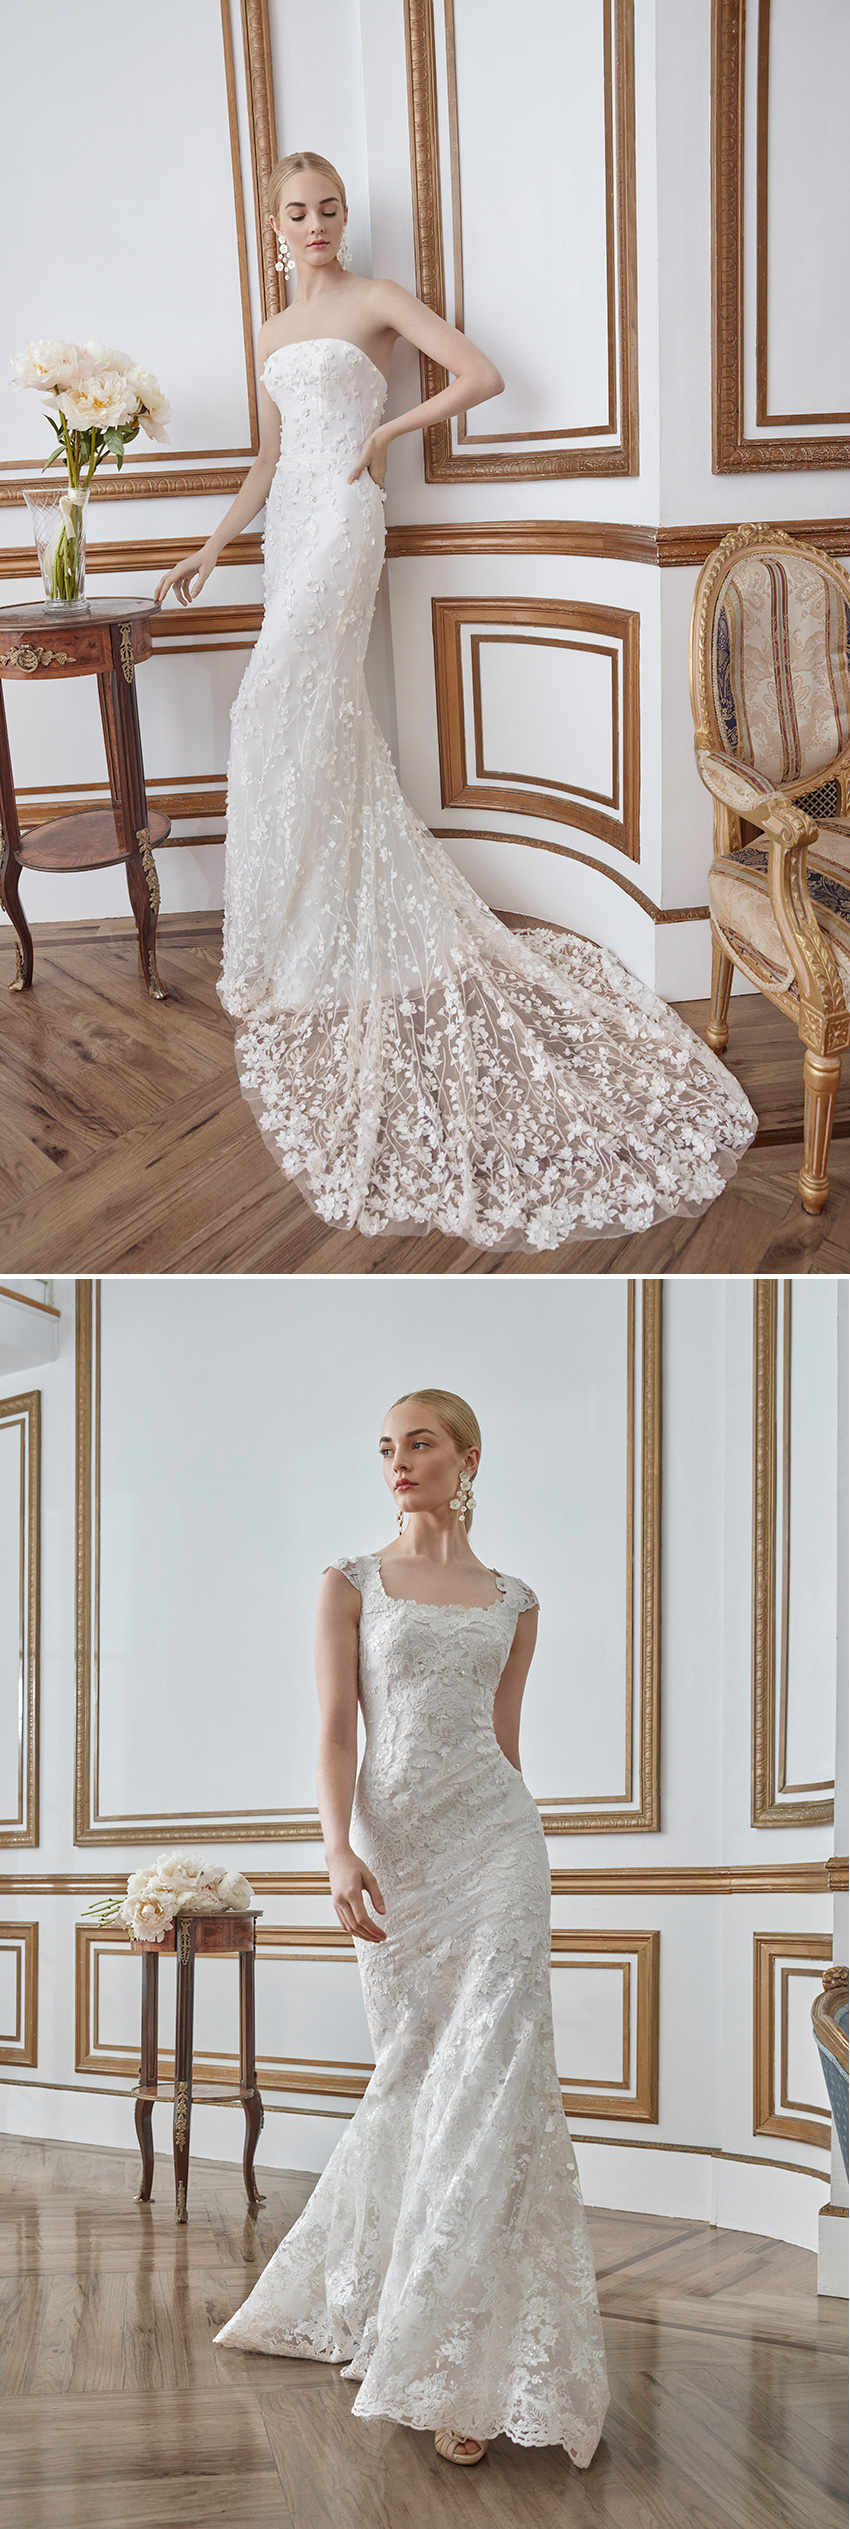 Sareh Nouri Fall 2021 Bridal Collection is designed for the Modern Bride featured in Perfect Wedding Magazine